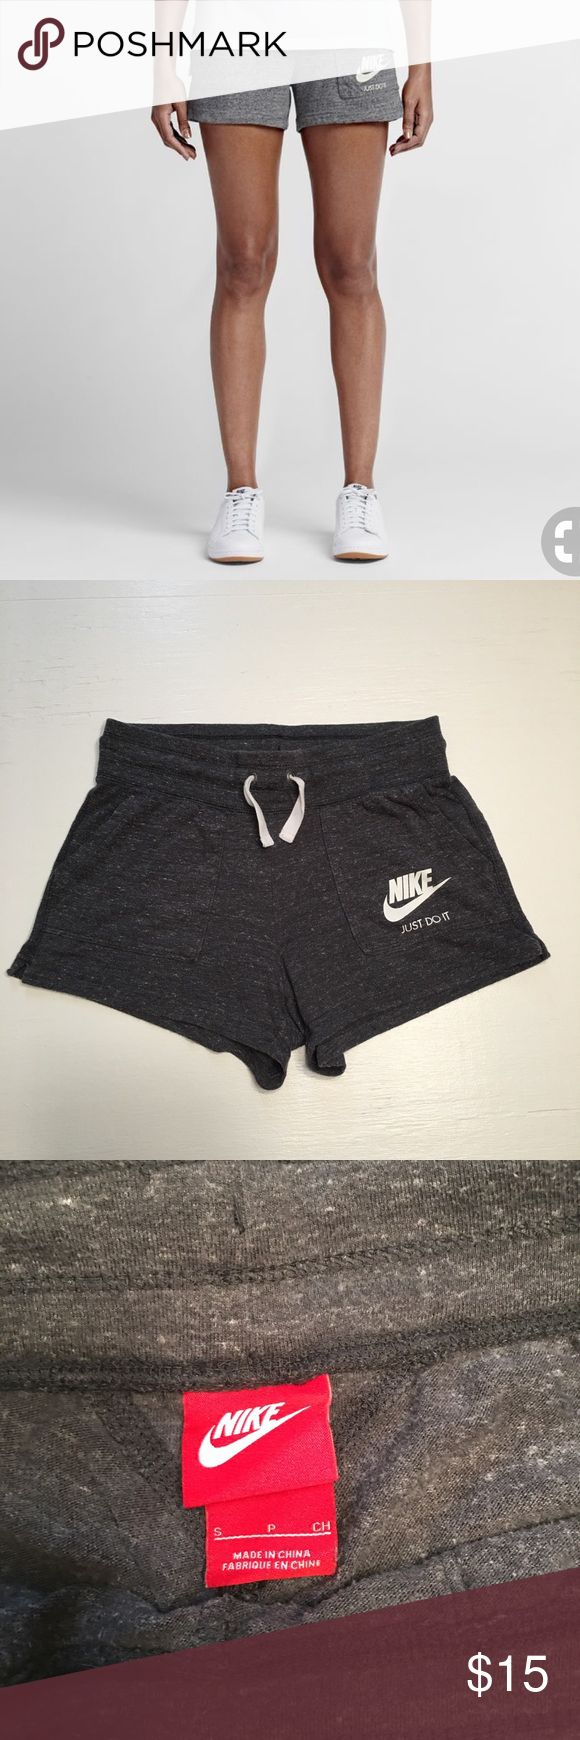 """Nike Vintage Style Cotton Lounge Shorts Nike Vintage Style dark grey cotton lounge shorts, with drawstring waist, swoosh symbol & Just Do It logo on pockets! Great for lazy Sundays!!! Size S. Measurements: waist-14"""", inseam-3"""", length-11.5"""". *No trades or try on's. **Props not included ***SMOKE FREE HOME A7 Nike Shorts"""